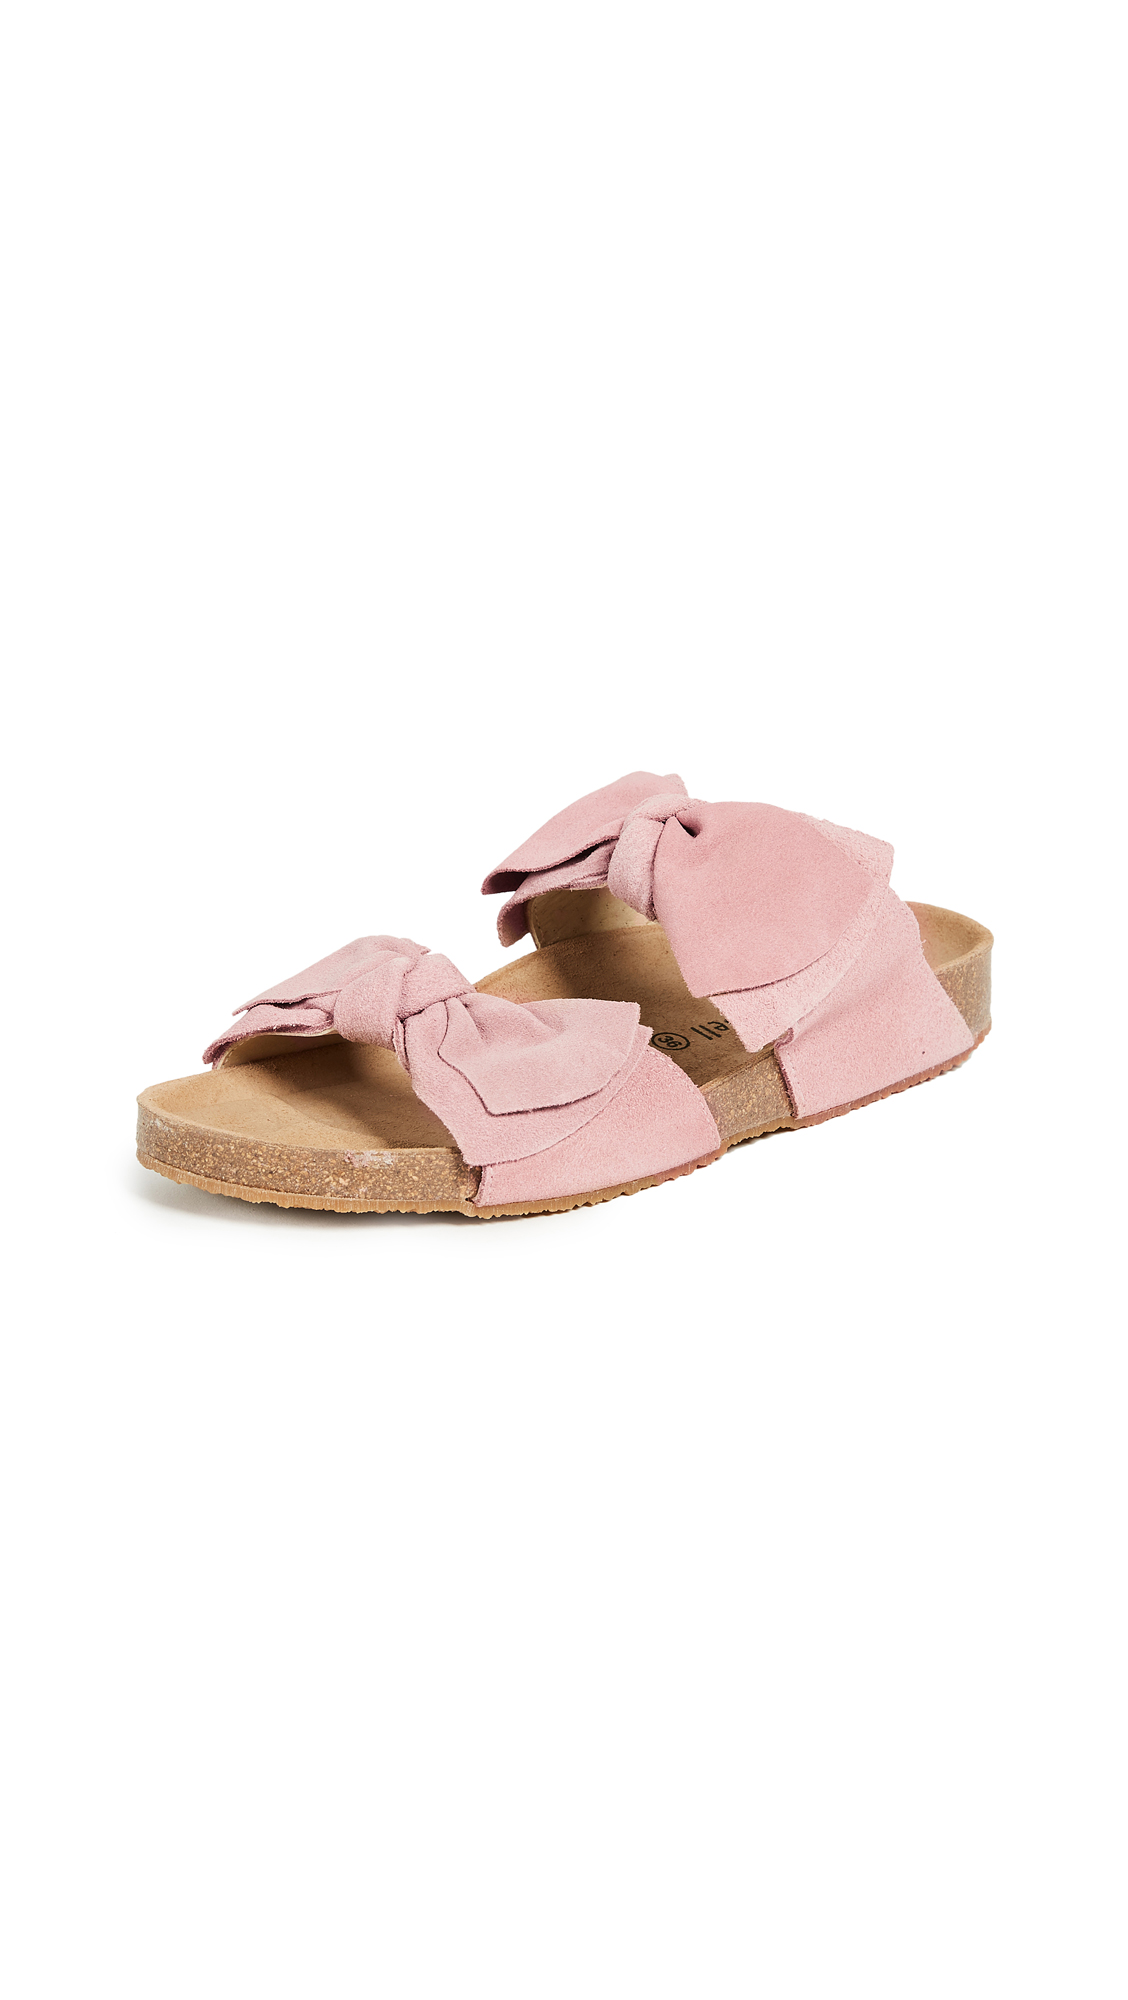 Jeffrey Campbell Lanai Bow Slides - Blush